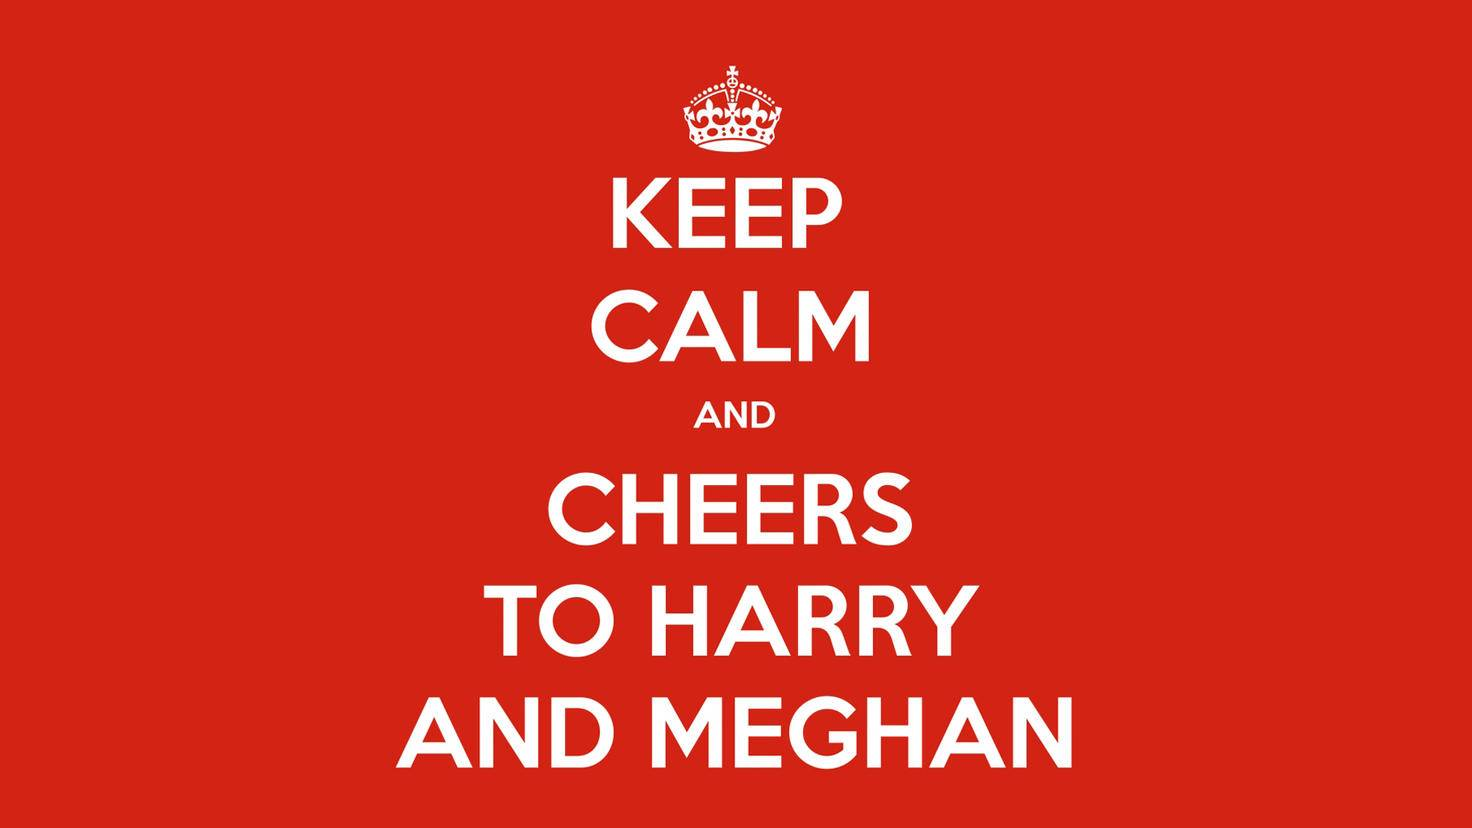 keep calm and cheers to harry and meghan